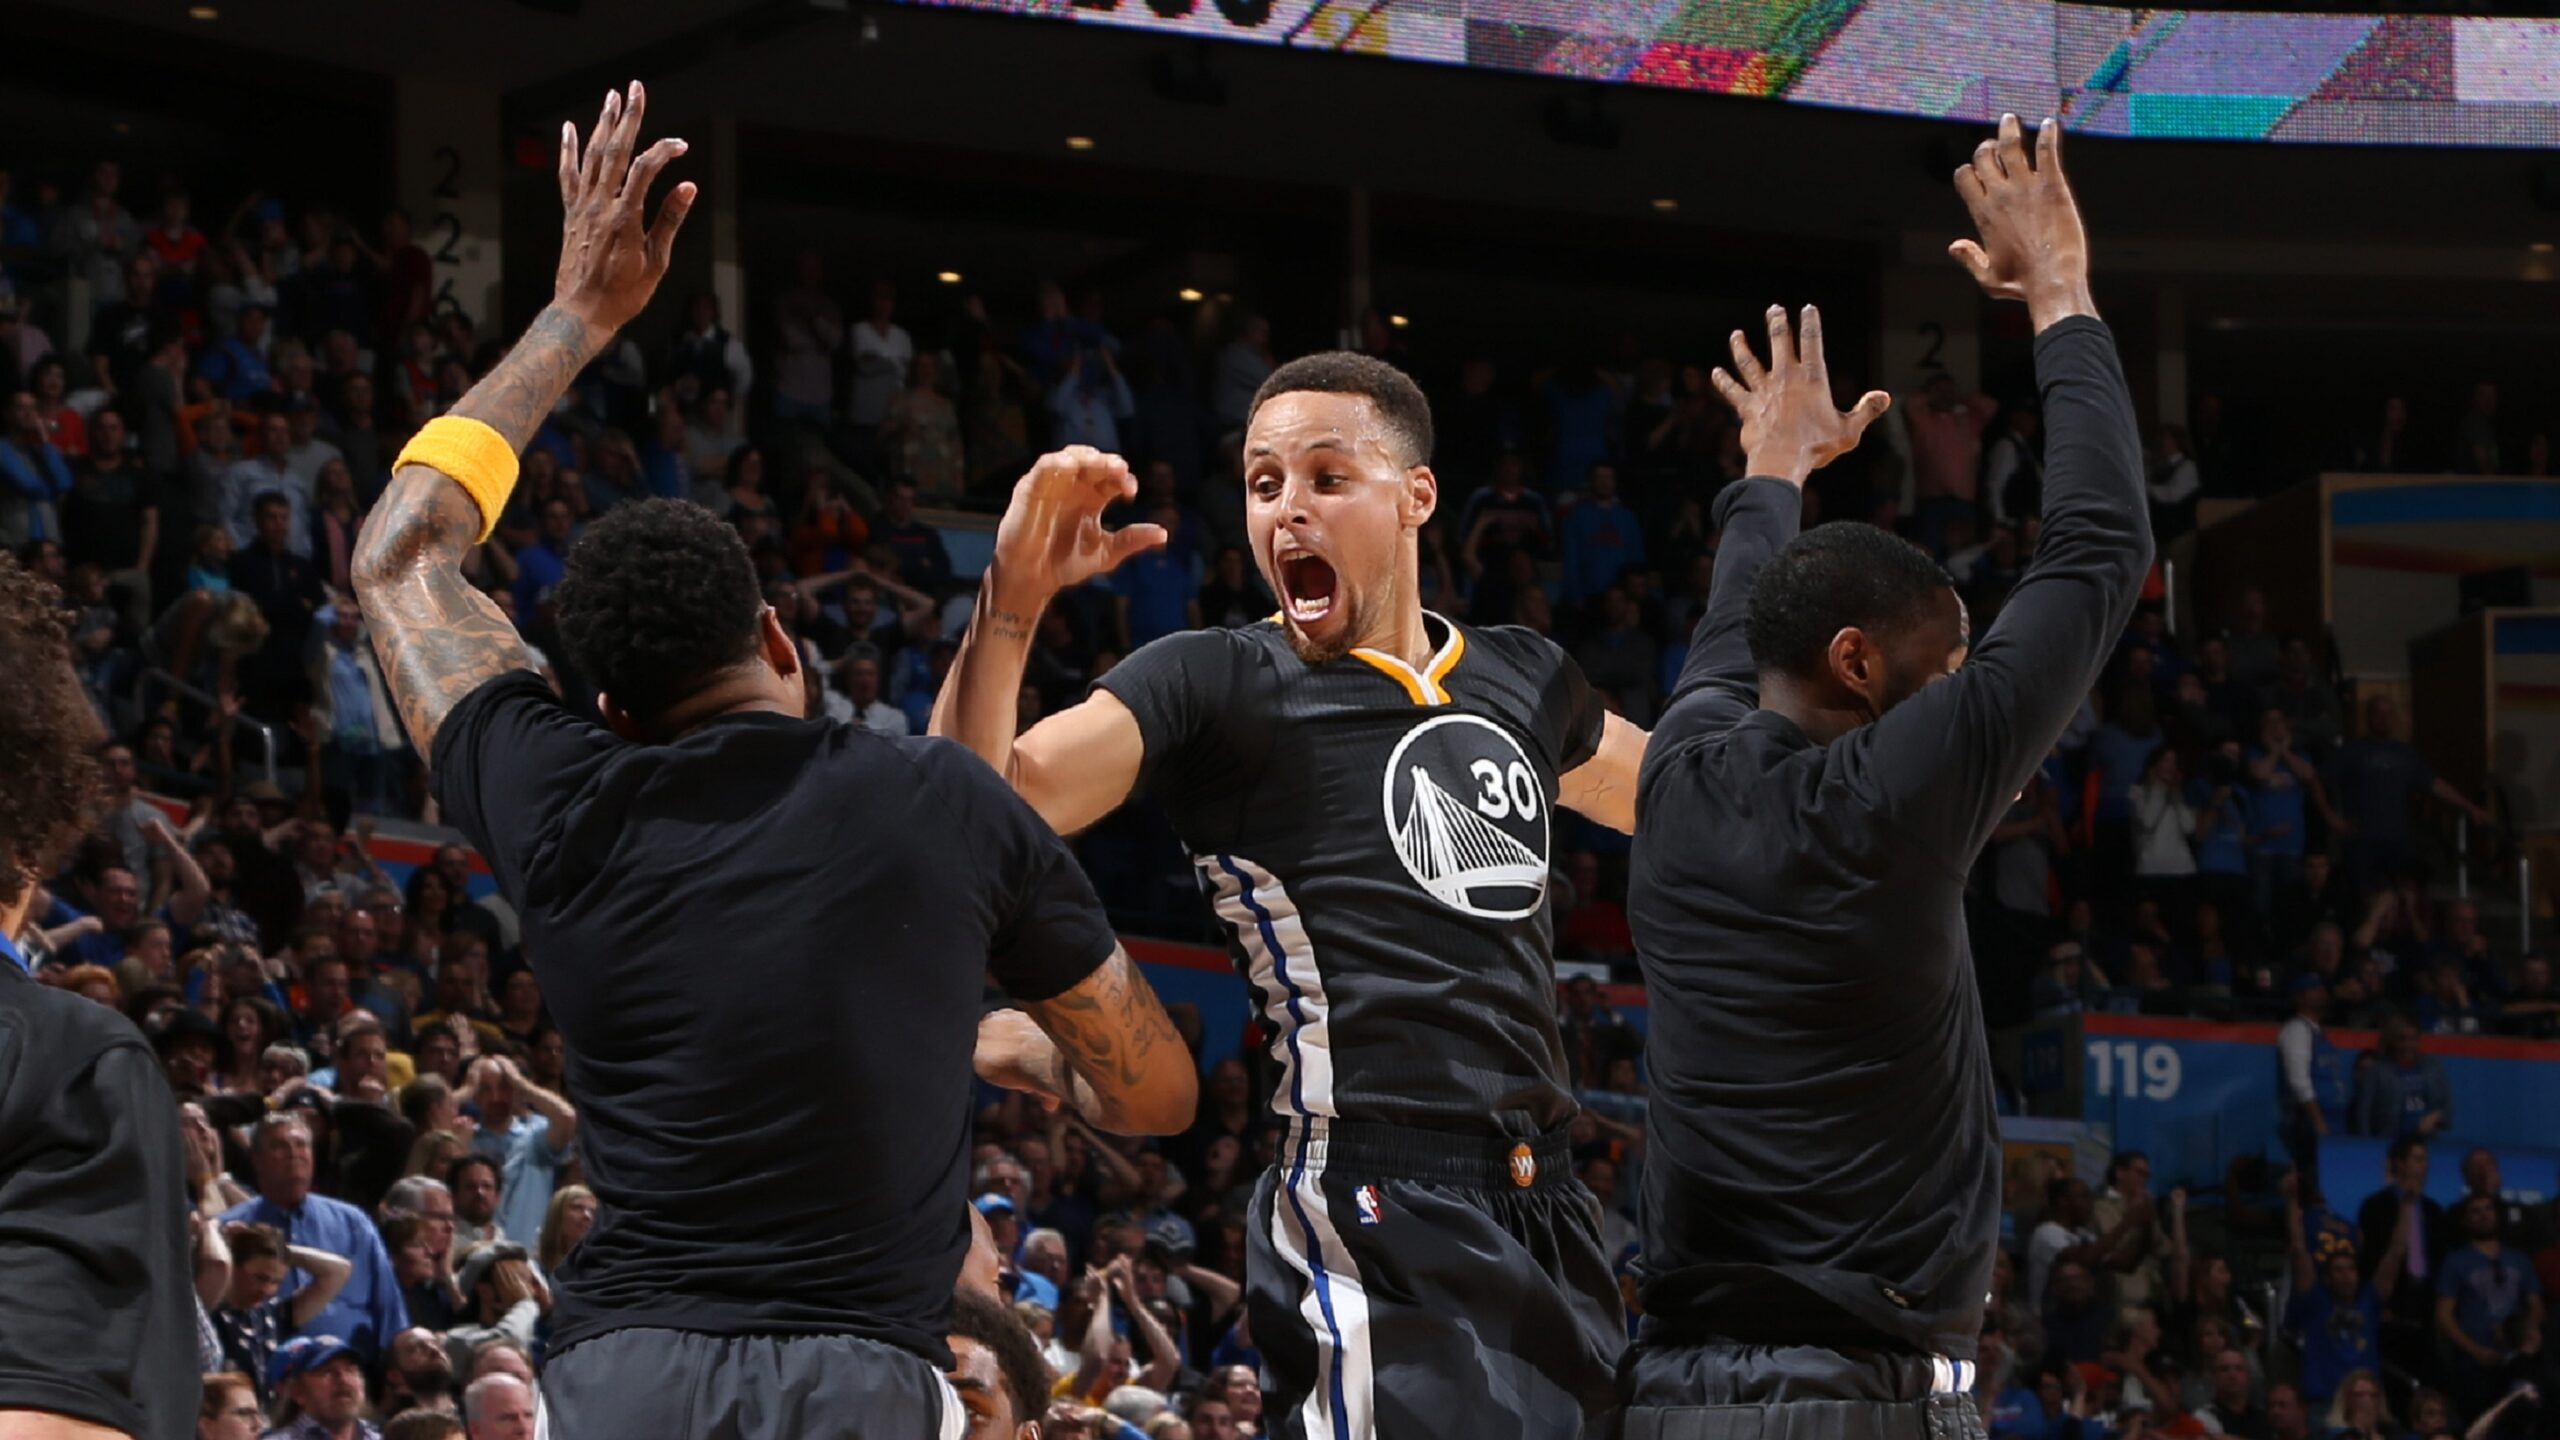 Curry's big shot vs. Thunder changed the game